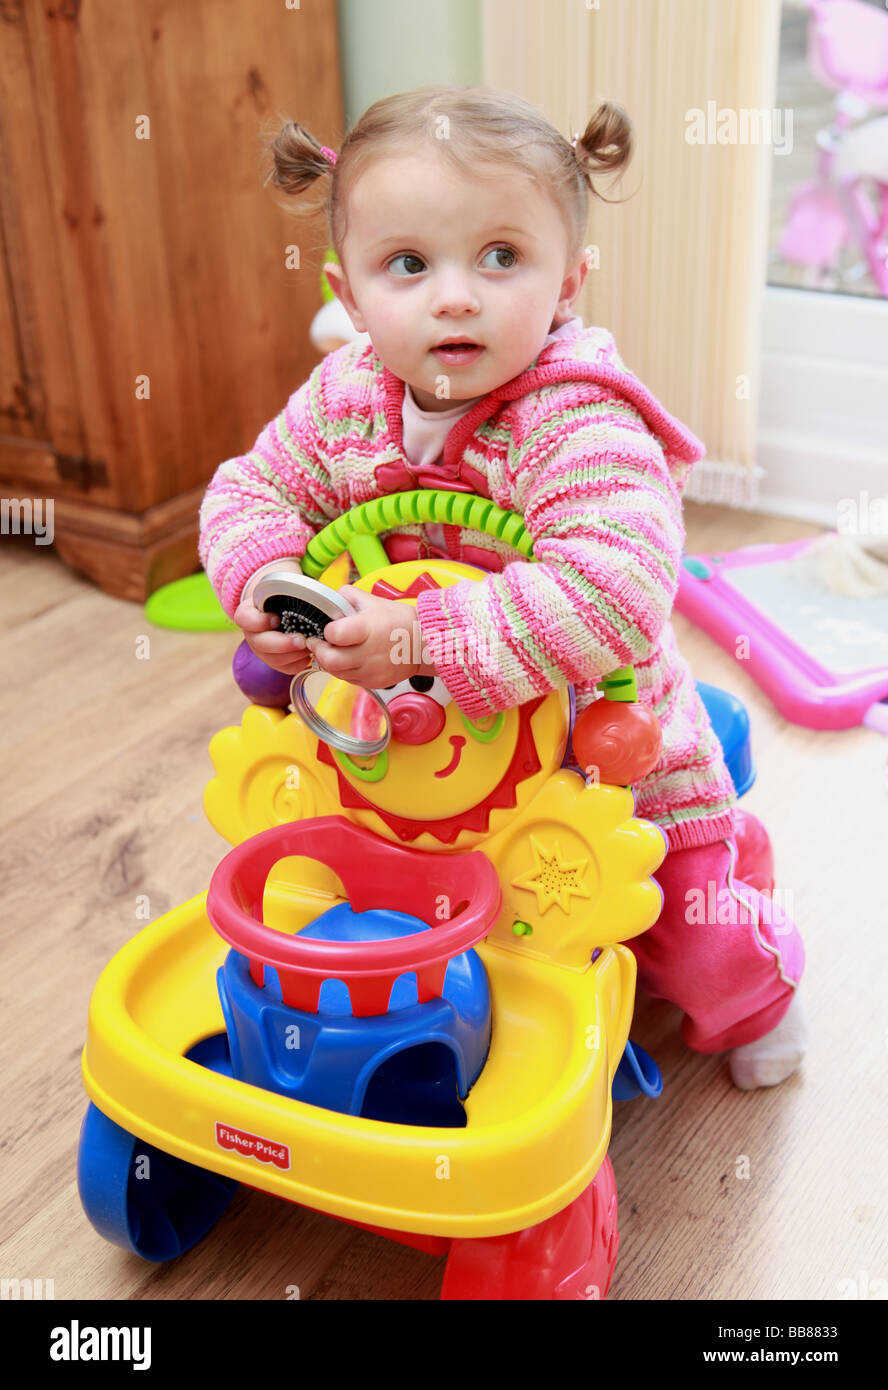 2 year old girl playing with toys Stock Photo